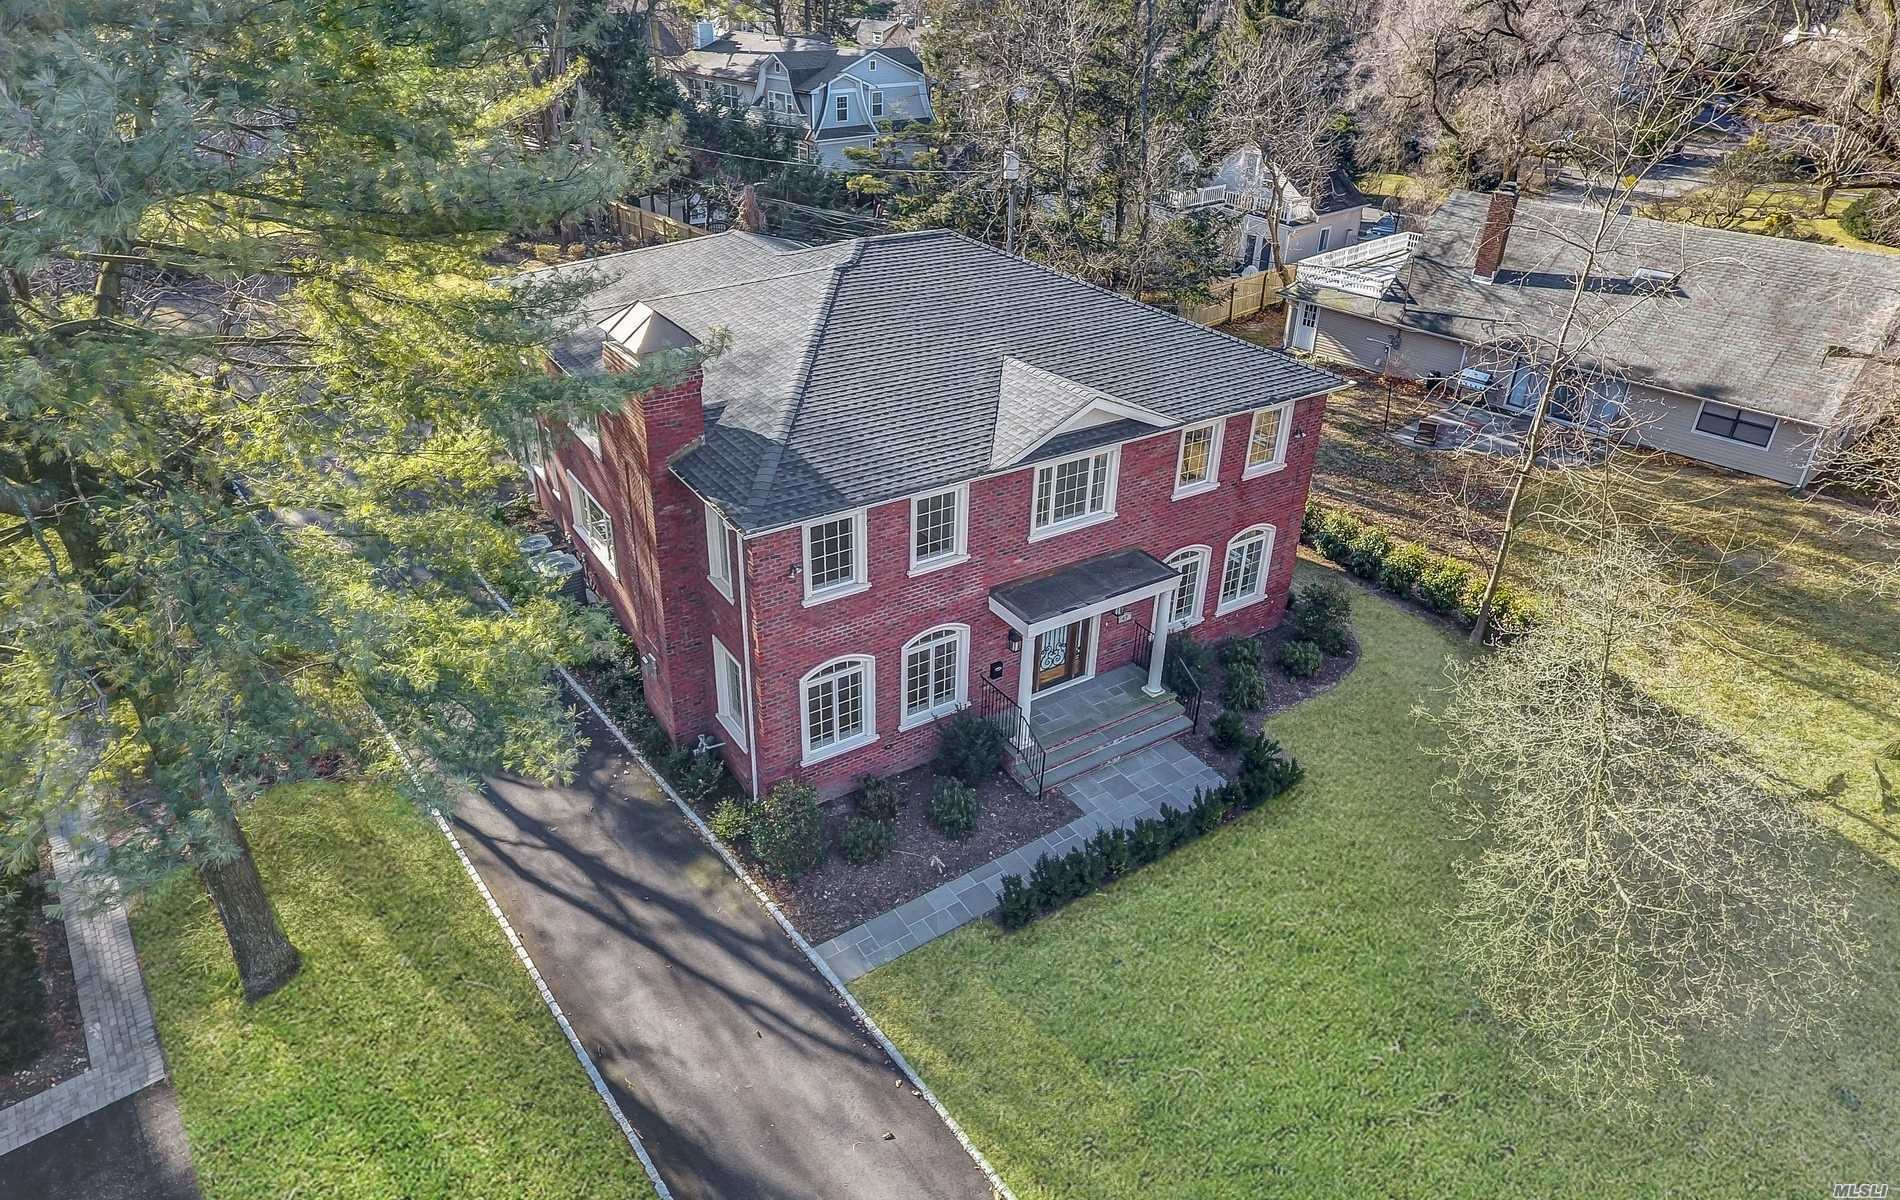 Fine Quality New Construction In The Heart Of Flower Hill. Impeccable Attention To Detail. 5000 Sqft.Of Luxury Built. Offers Dramatic Entry W/Barrel Ceiling, Oversized Principal Rooms W/Fireplace, Beautiful Architectural Detail & Mill Work, State Of Art Eat-In Kitchen W/Top Appliances, Triple Size Center Island W/Veg. Sink, Butler Area W/Wine Cooler, Master Suite W/Designer Bath, Oversized Prop/Room For Pool.Beautifully Finished Basement/Bath.Port Washington Train Sticker. Roslyn Schools!